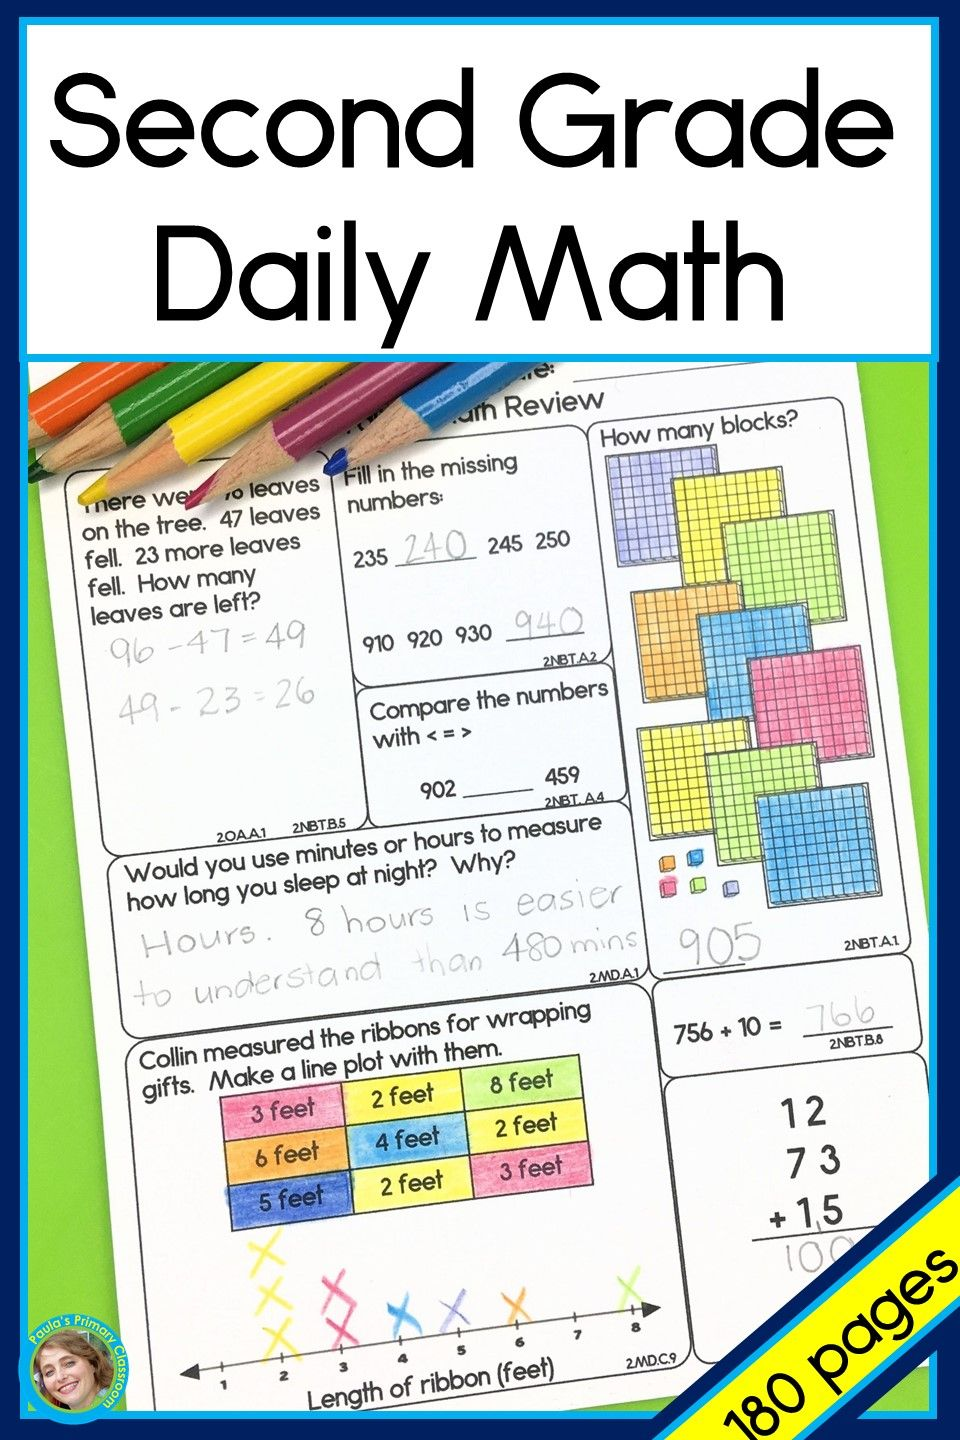 medium resolution of Second Grade Daily Math spiraling year long curriculum covering Common Core  State Standards   Daily math